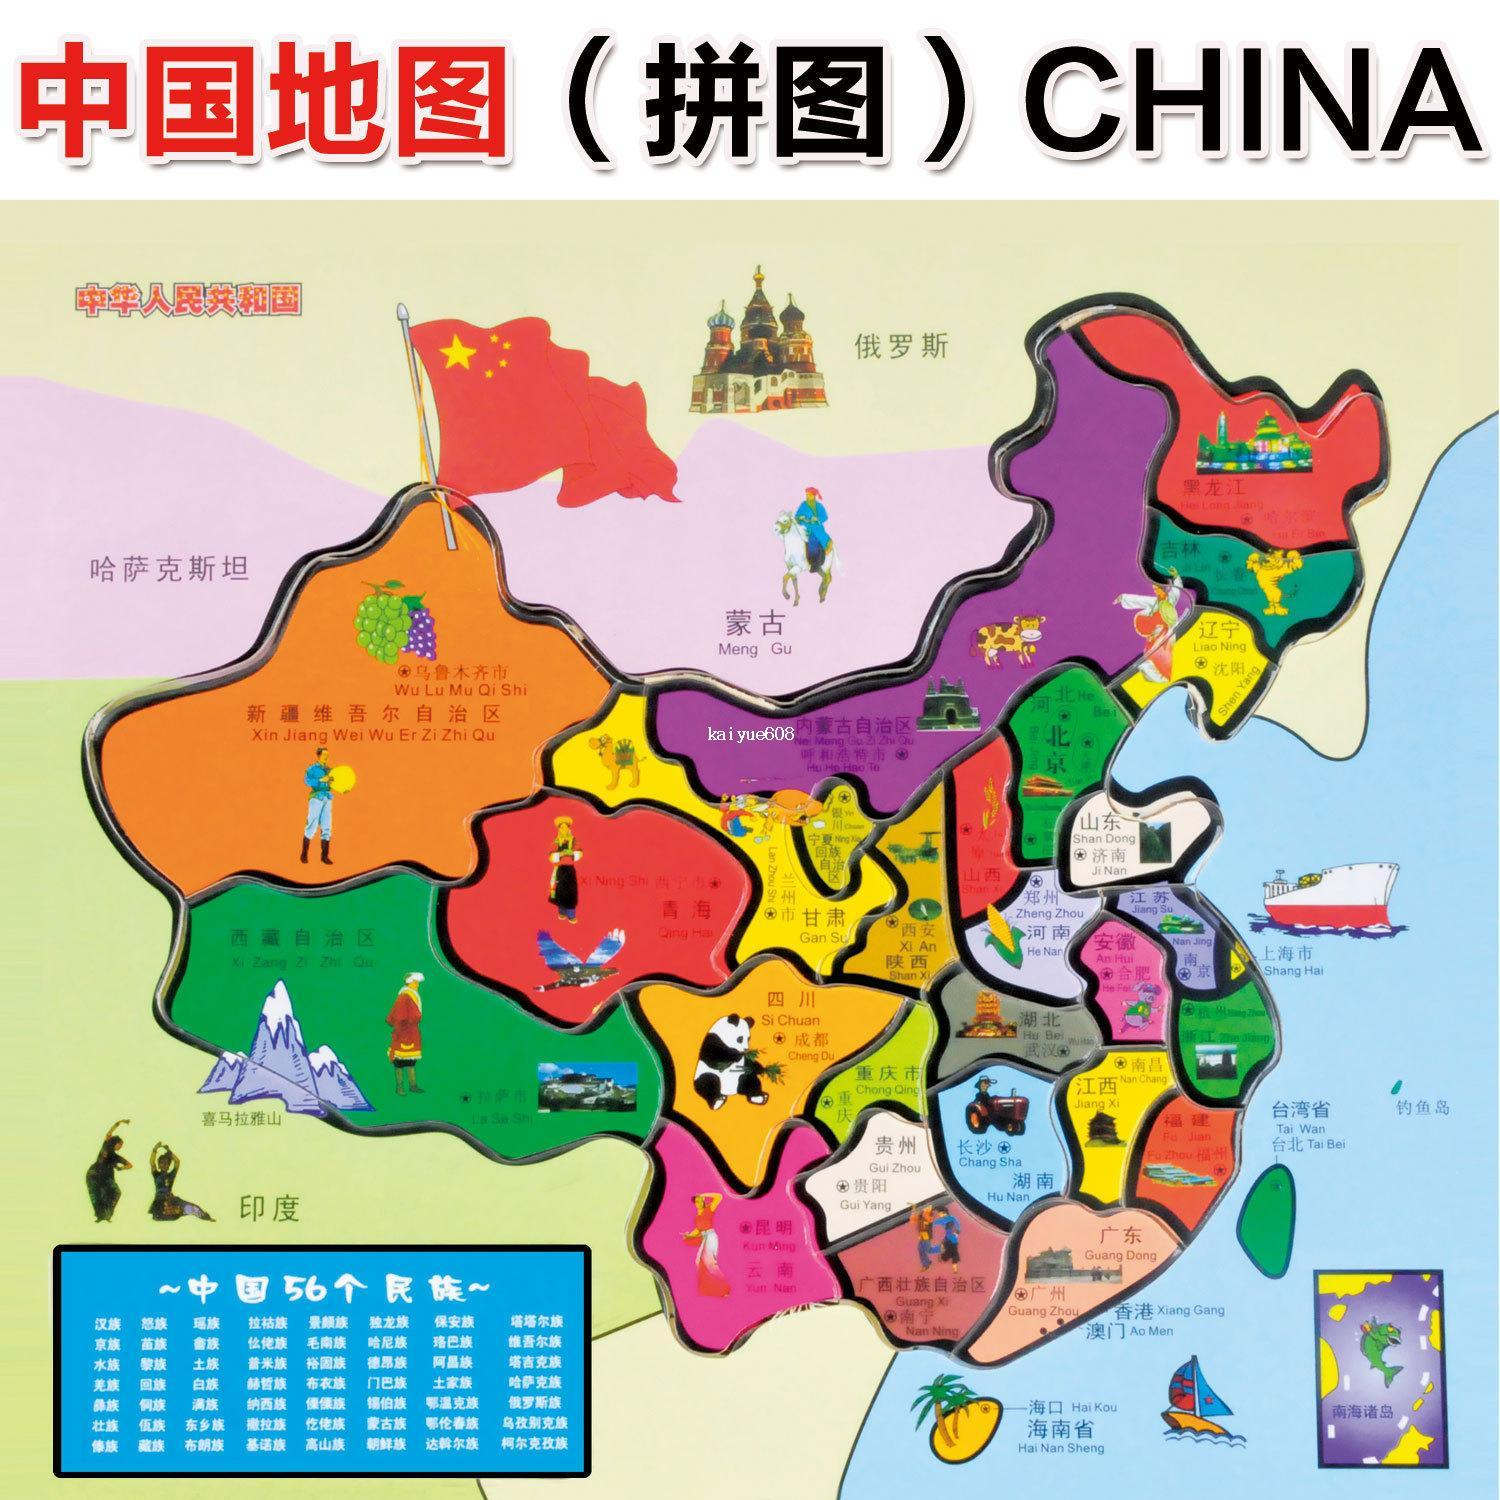 China Map Puzzle.Map Of China Puzzle Diy Handmade Preschool Toy Toy Box Free Shipping